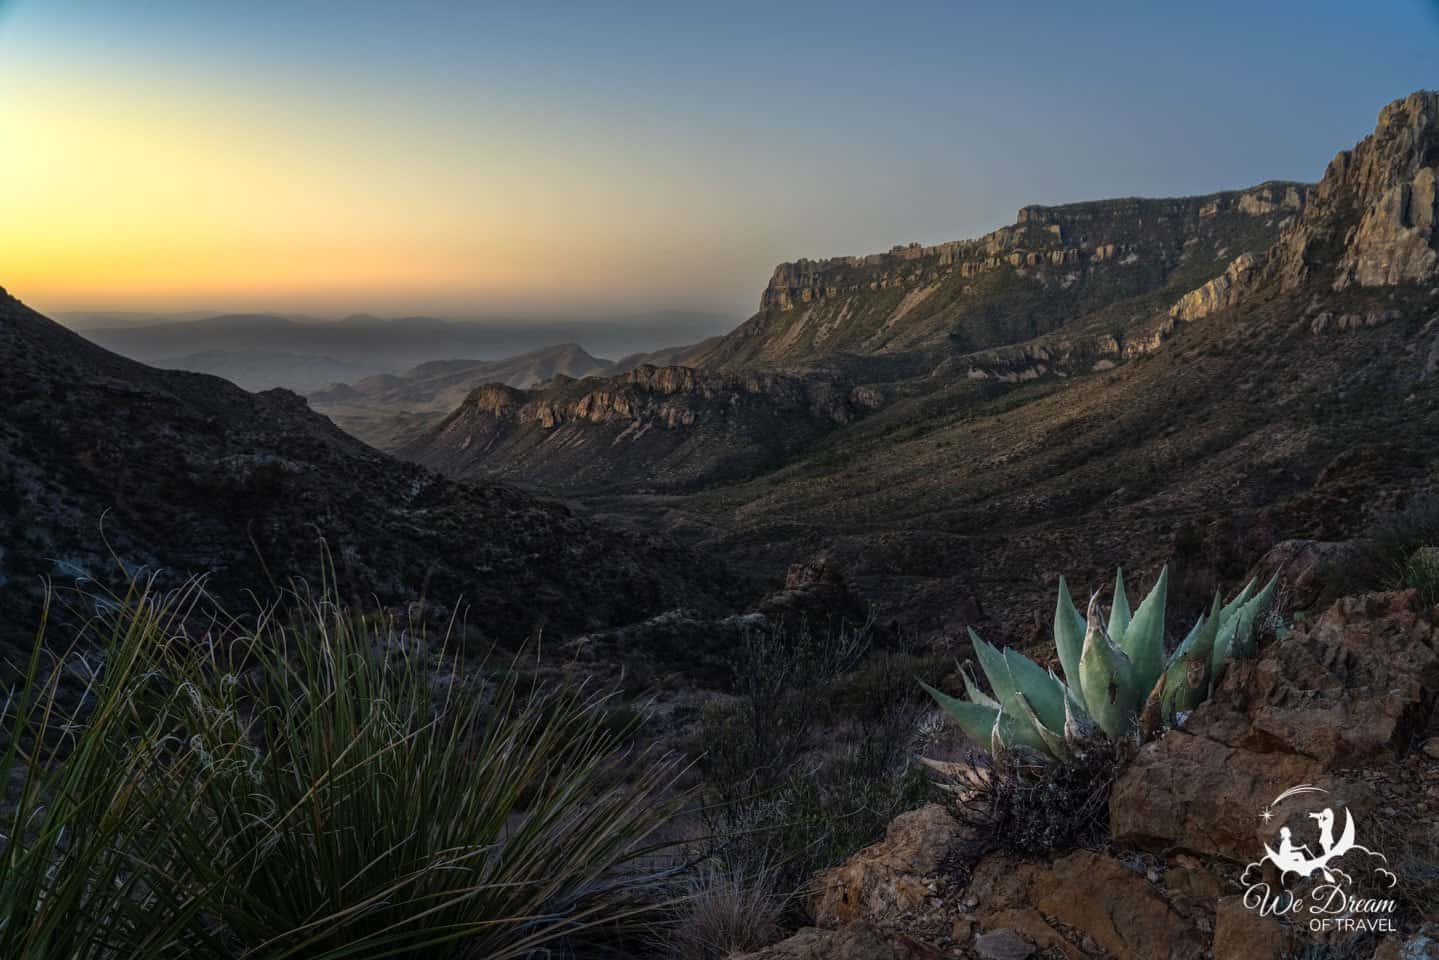 Sunrise picture from Lost Mine Trail in Big Bend NP.